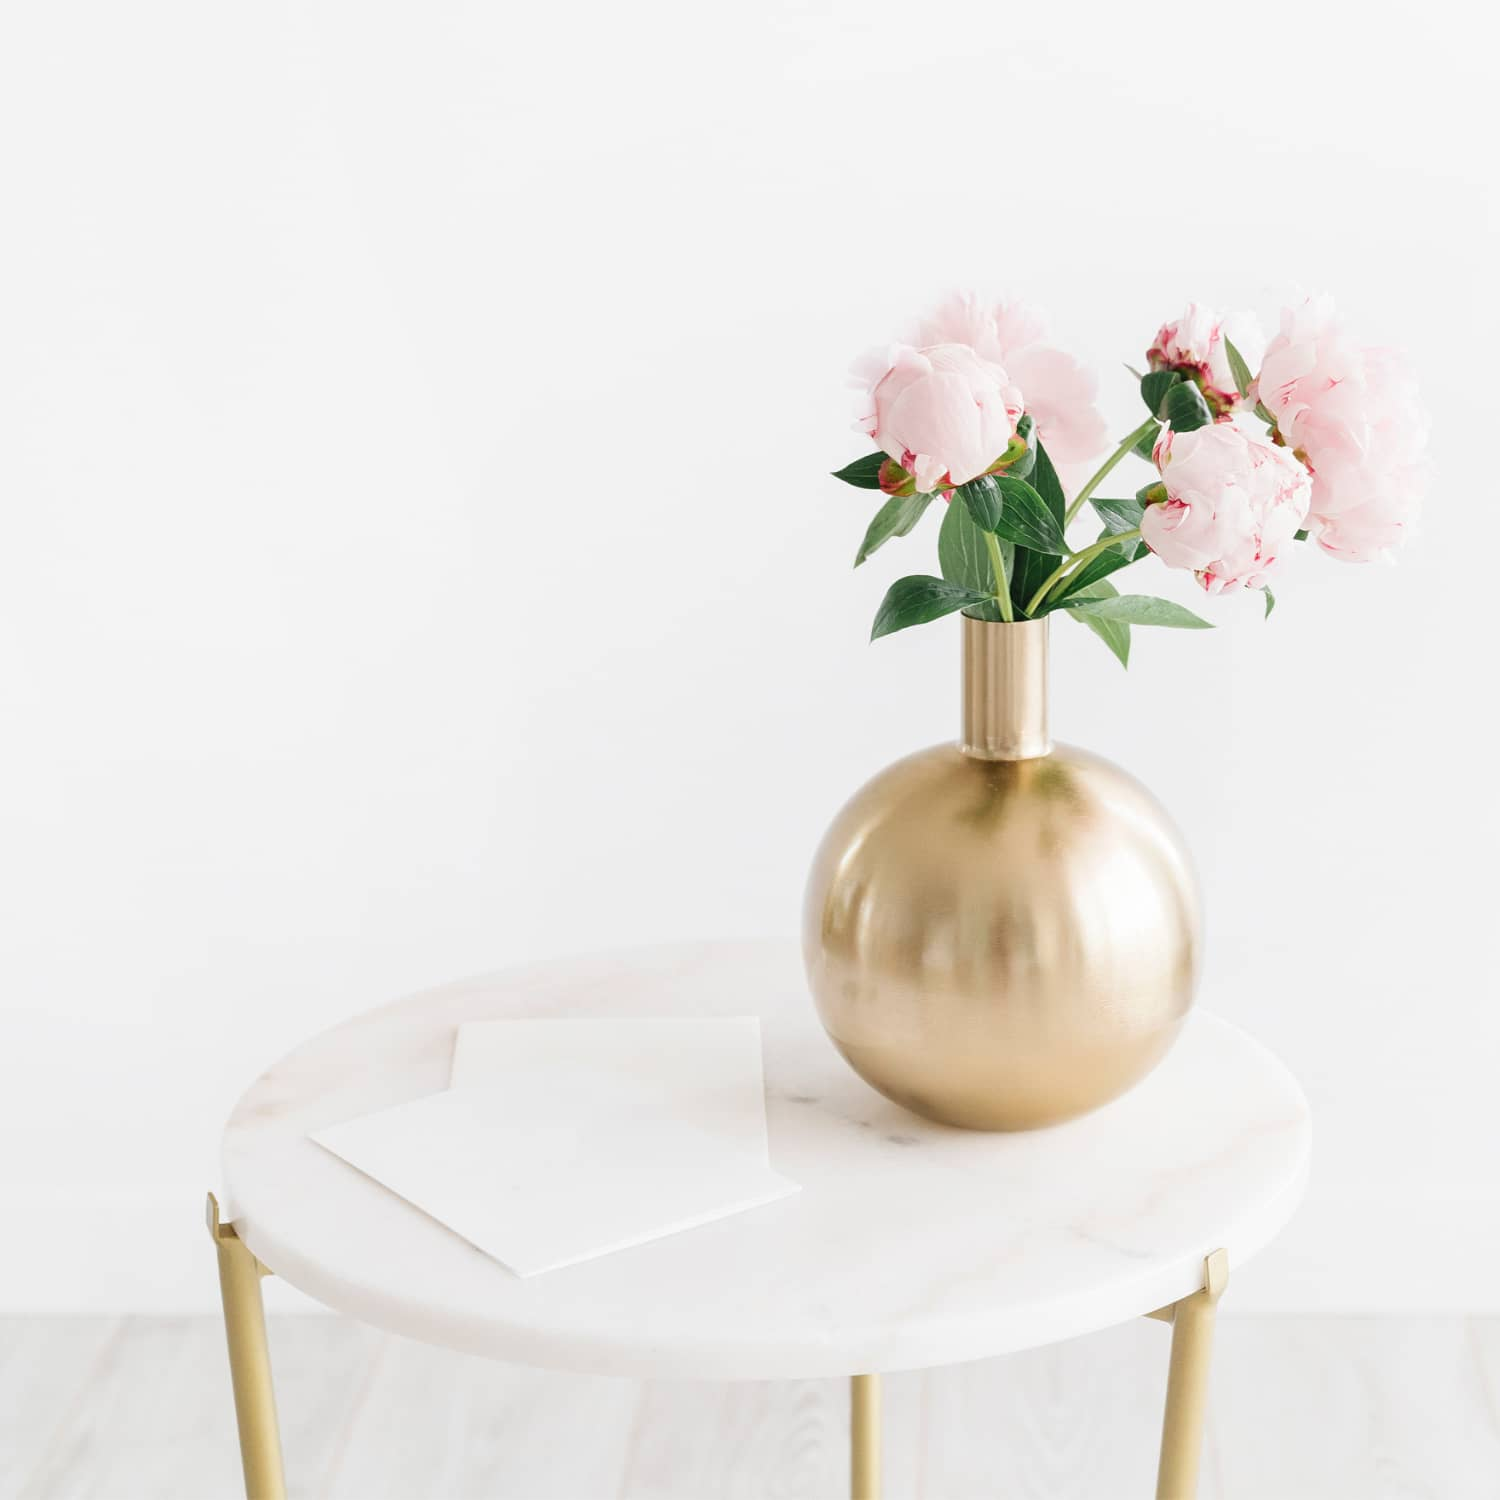 A side table with a gold vase holding pink peonies and a note pad on it